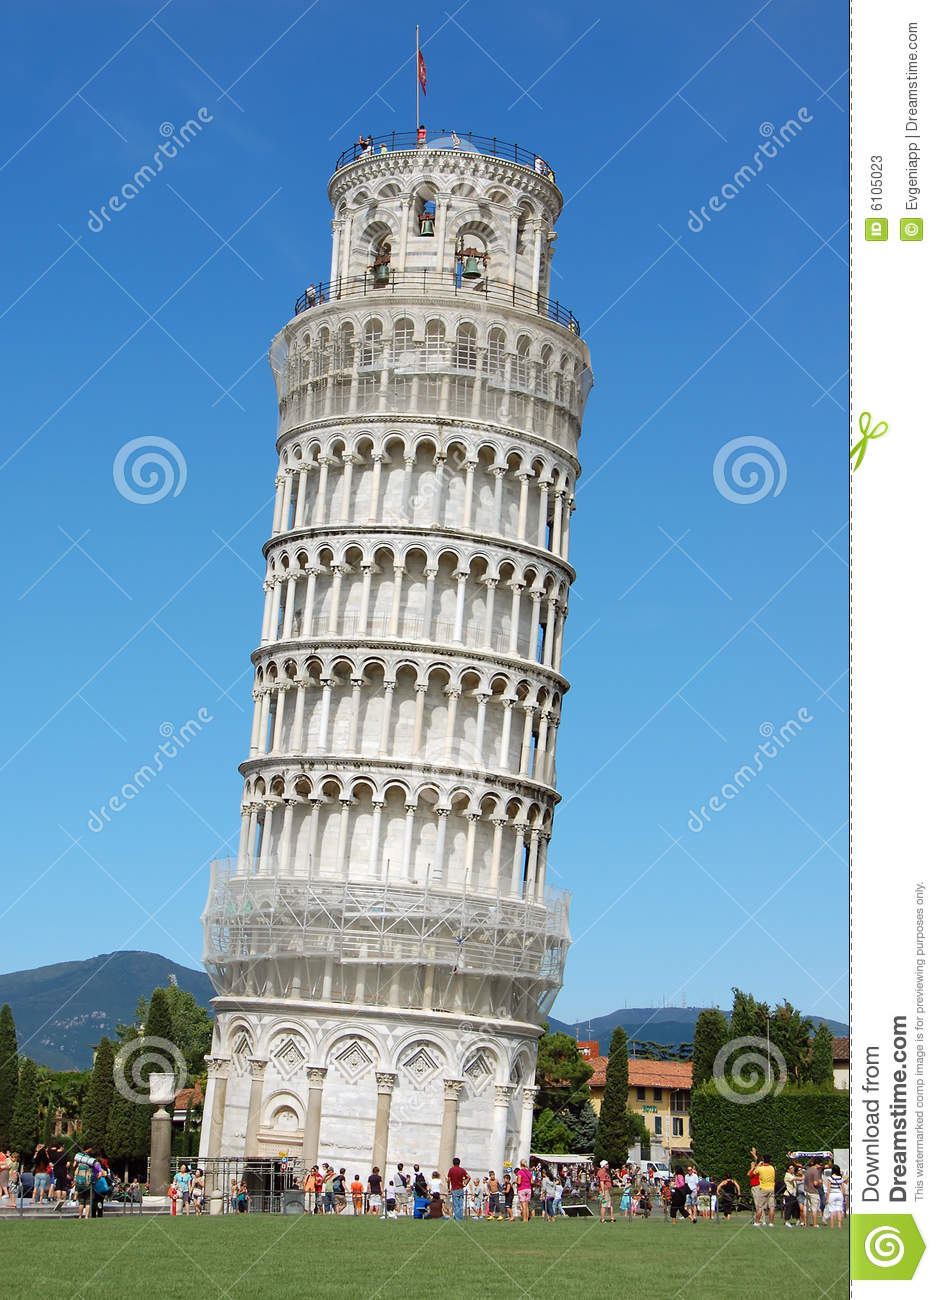 The Famous Leaning Tower In Pisa Stock Photos - Image: 6105023